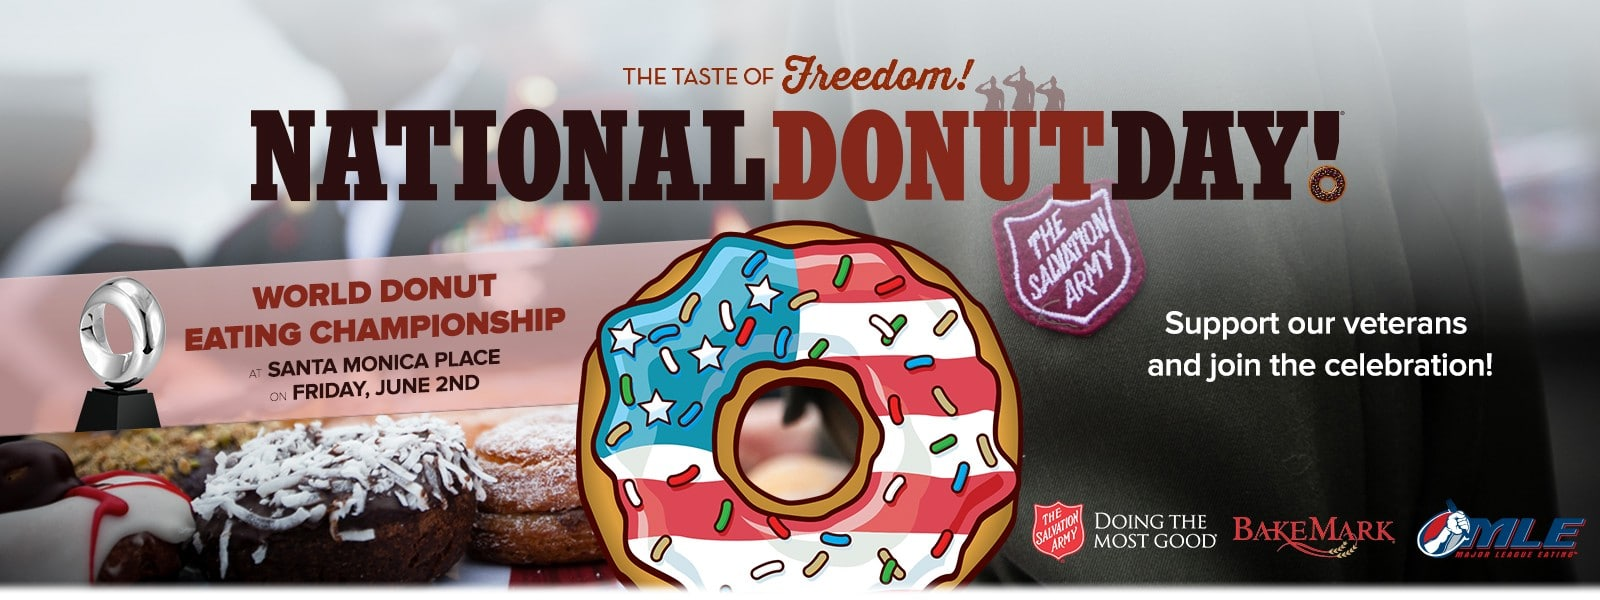 Join other Gamers on National Donut Day to honor veterans.